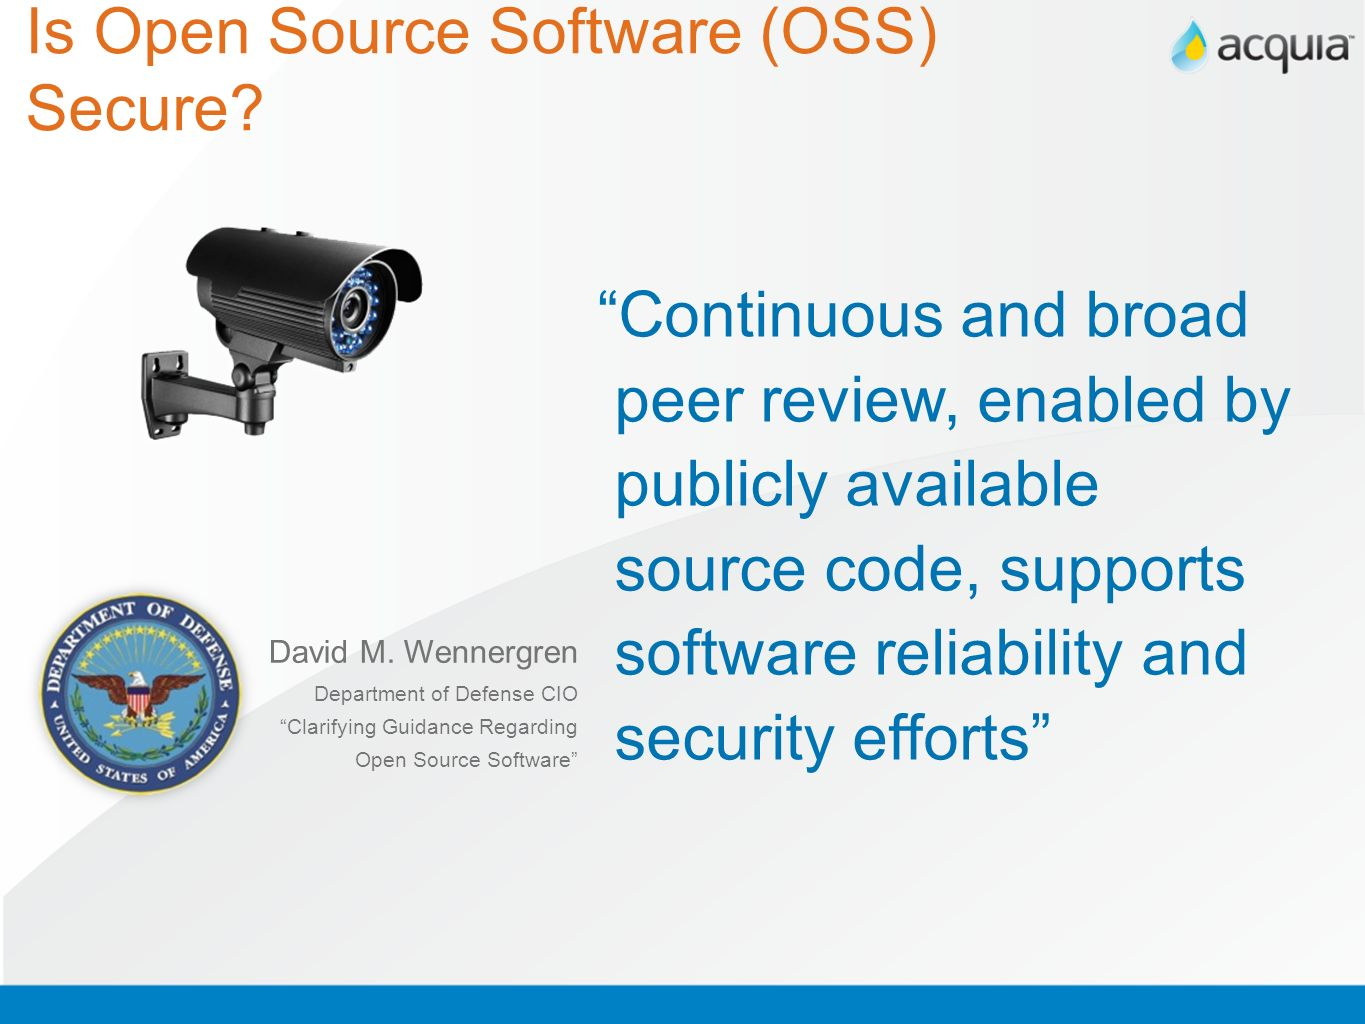 Is Open Source Software (OSS) Secure